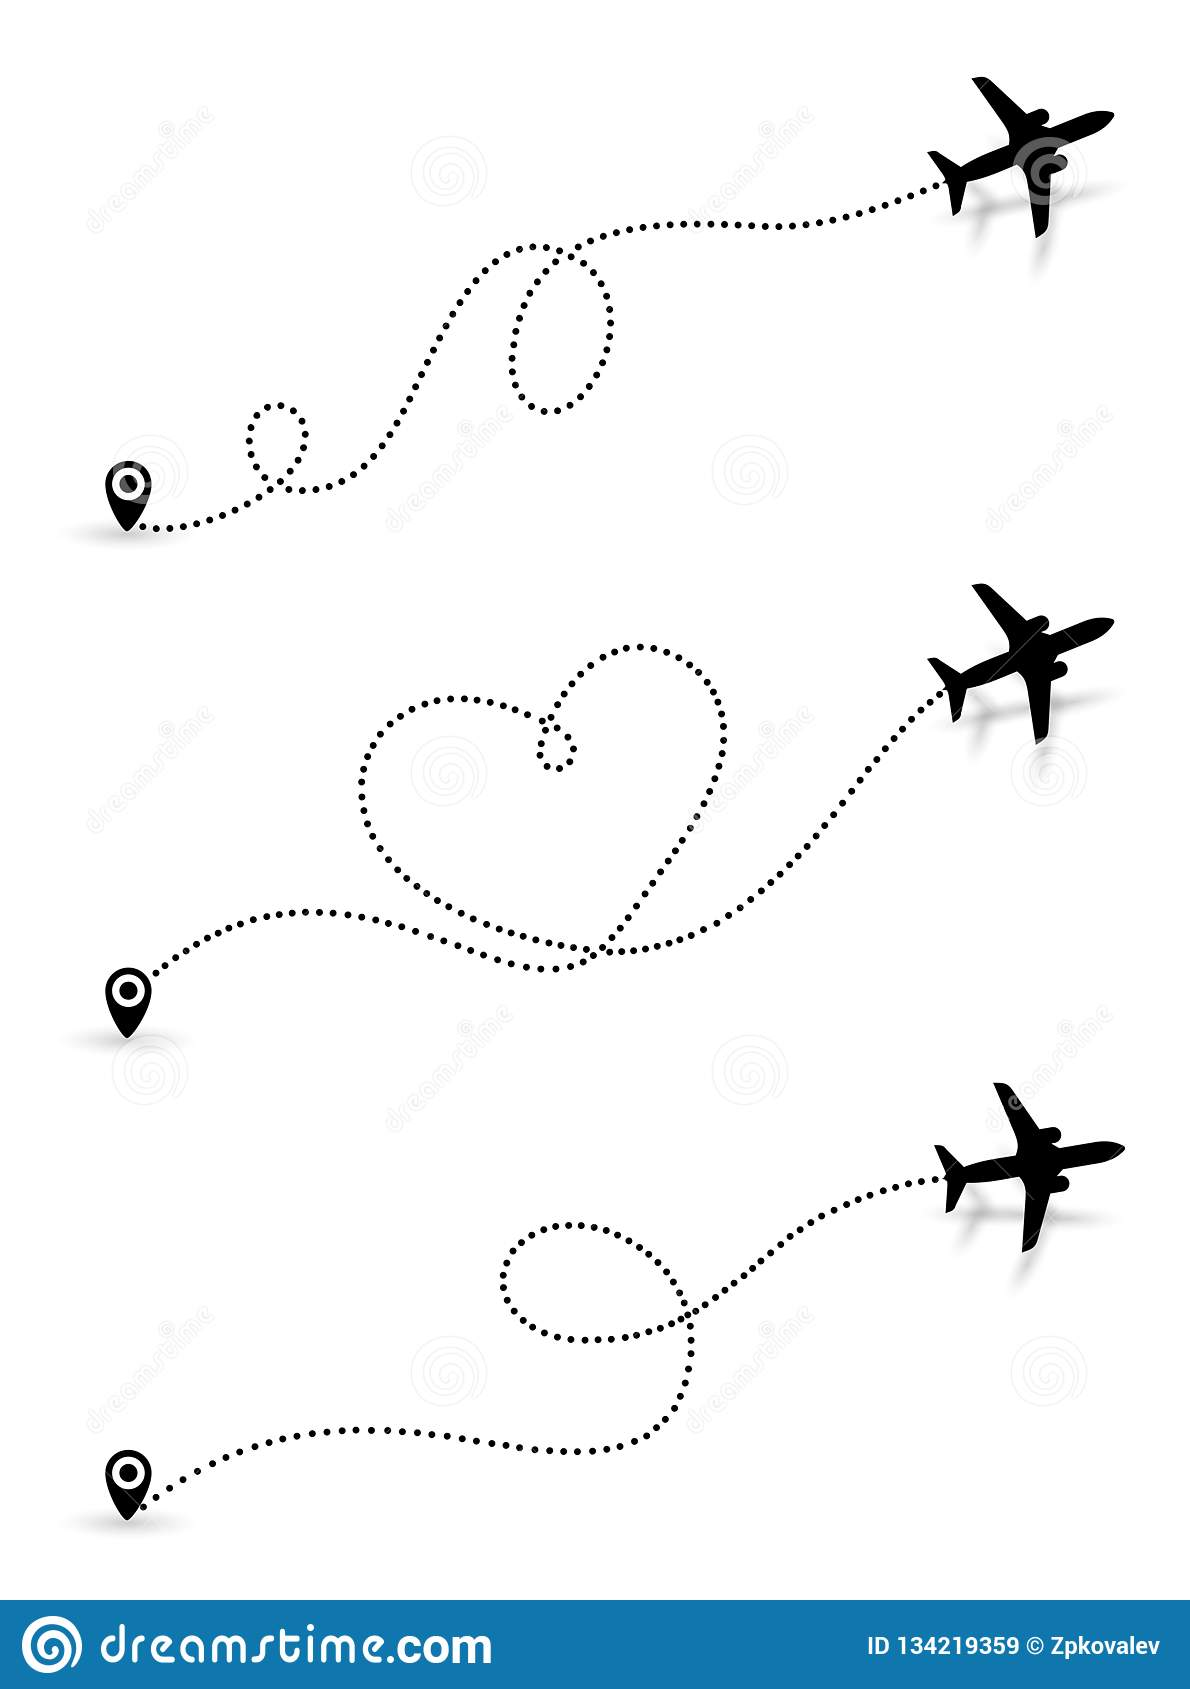 Set of Love travel route. Black Airplane line path icon of air plane flight route with start point and dash line trace. Vector